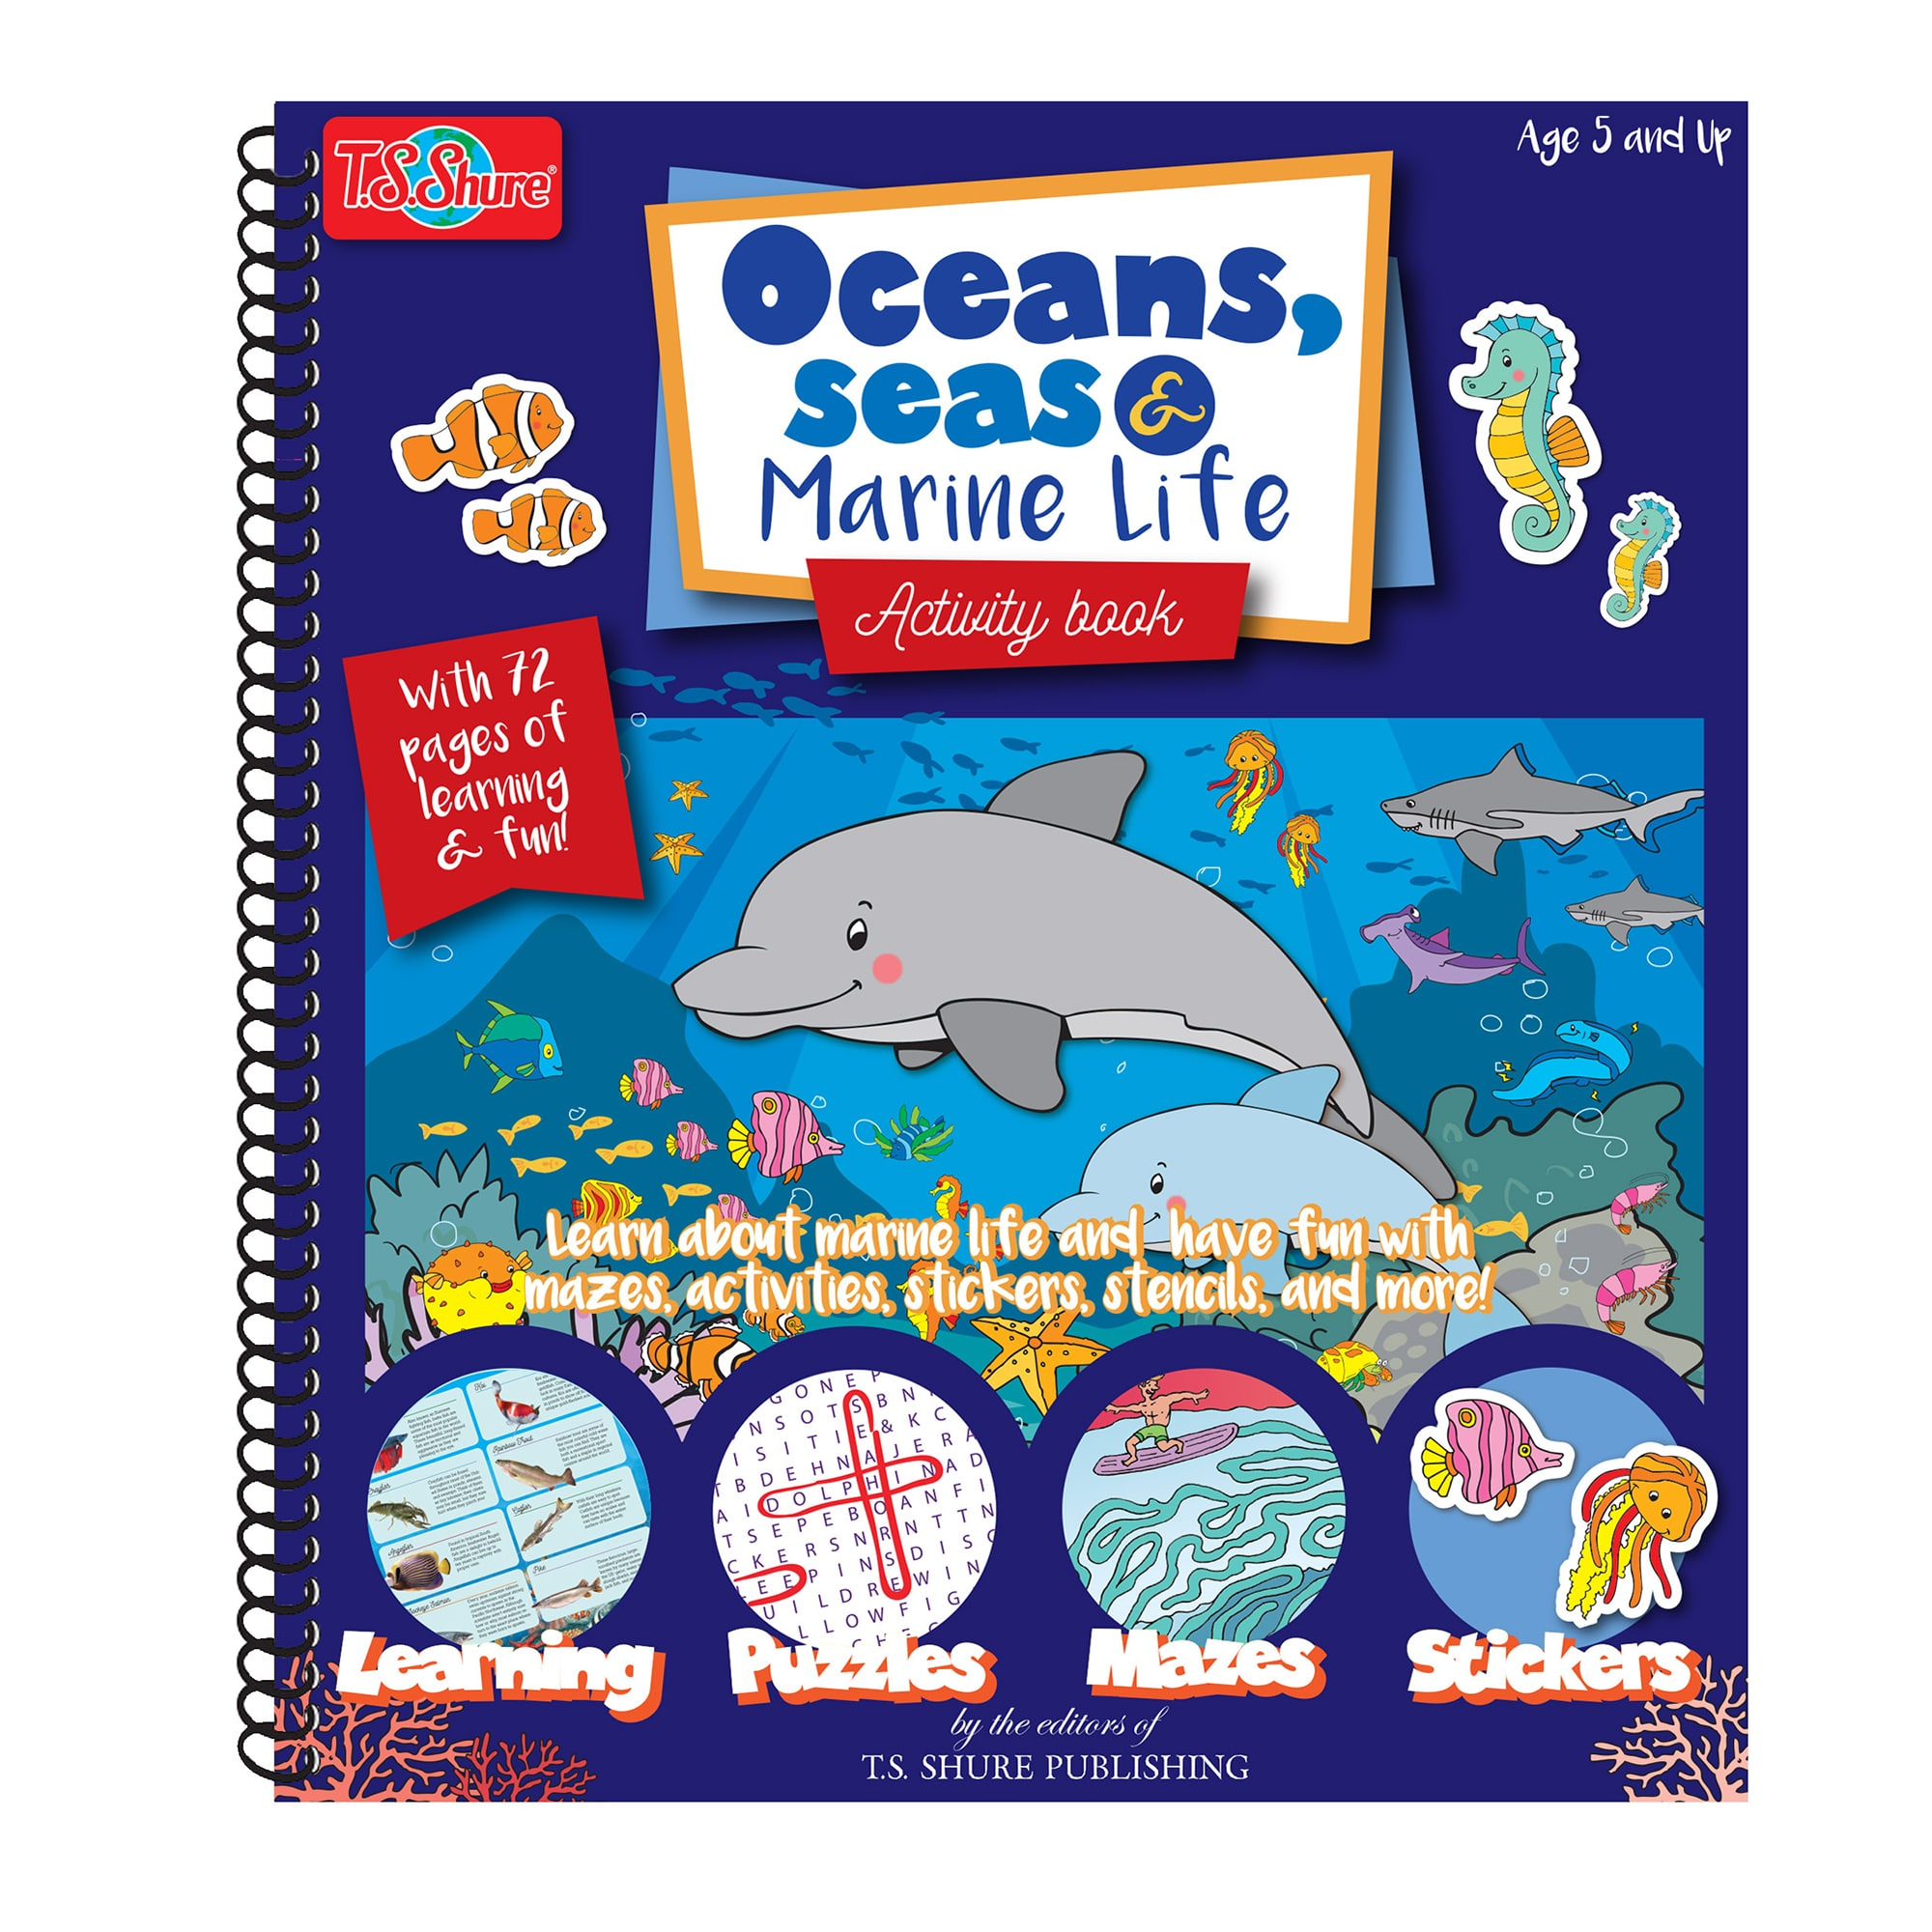 T.S. Shure - Ocean, Sea and Marine Life Activity Book